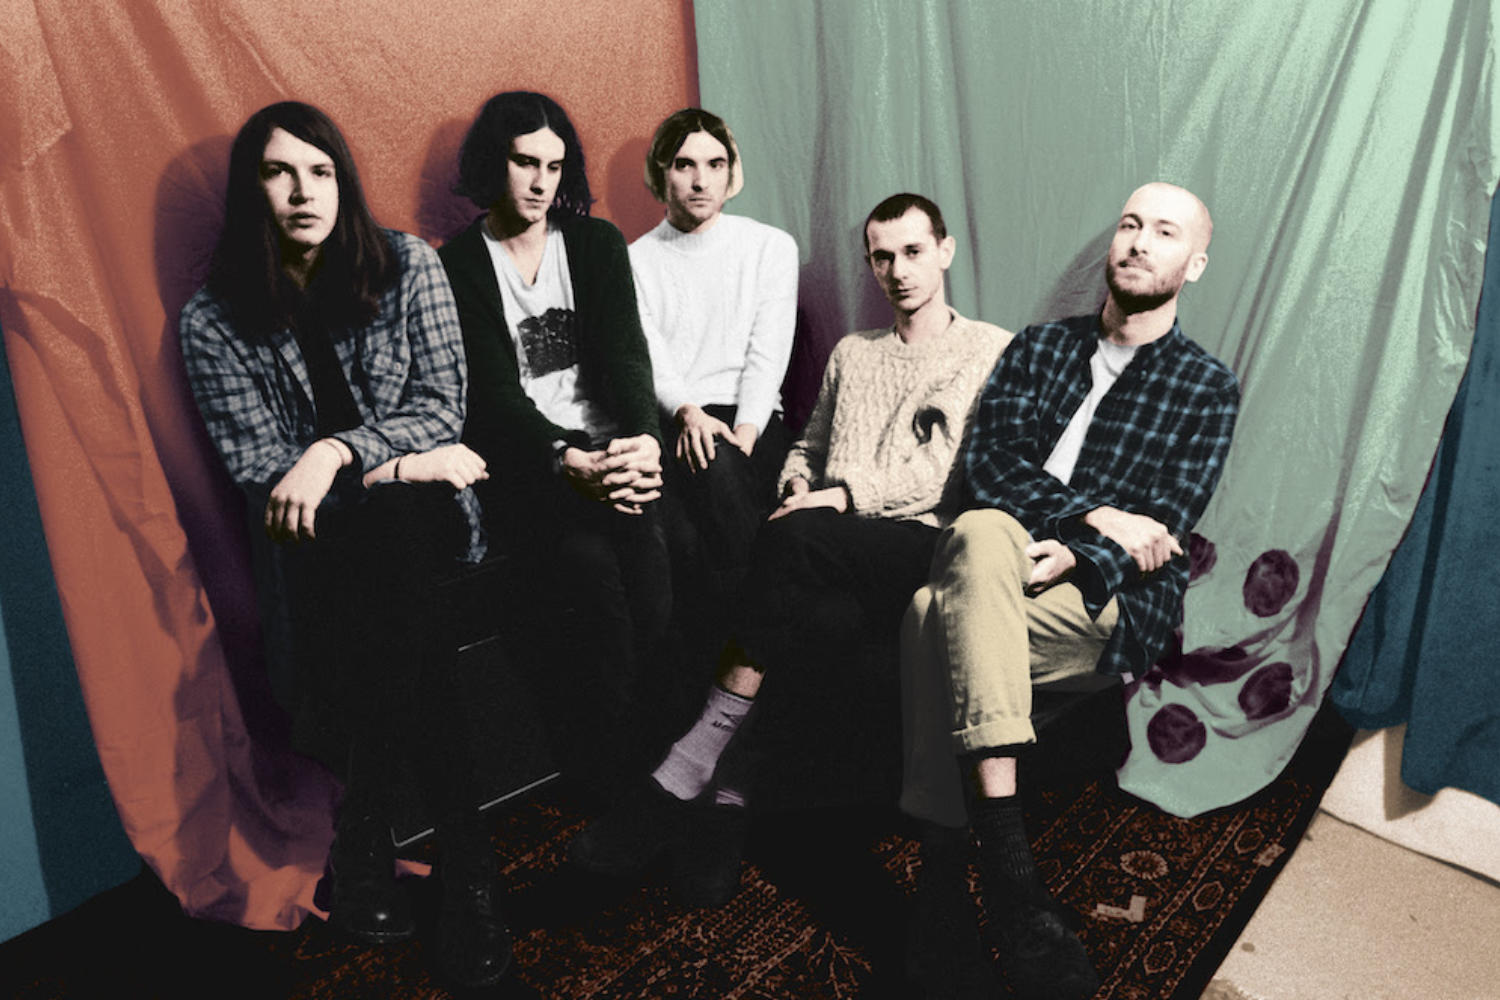 Ulrika Spacek are previewing their new album through an answering machine